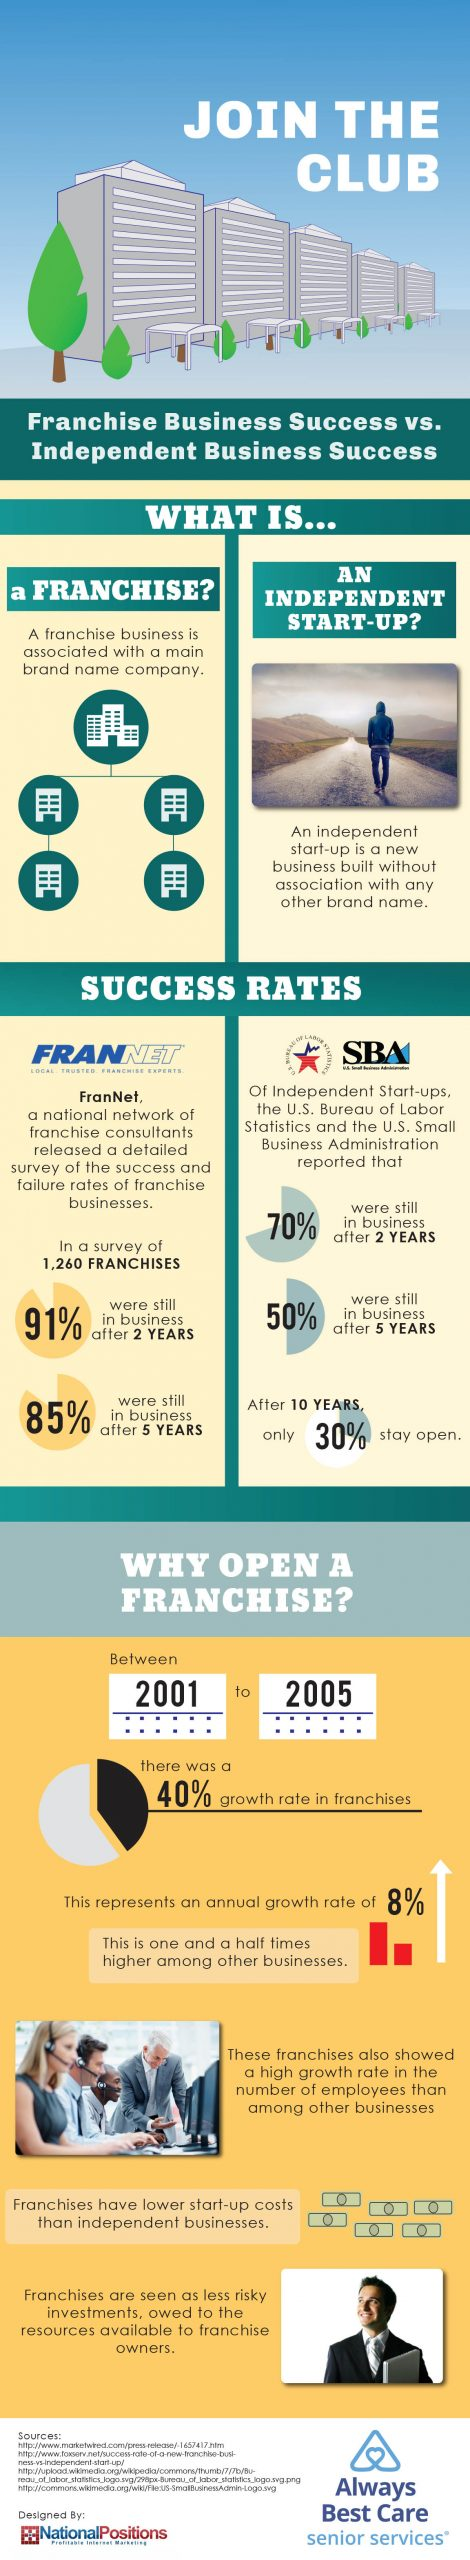 Learn more about the successes of owning a franchise